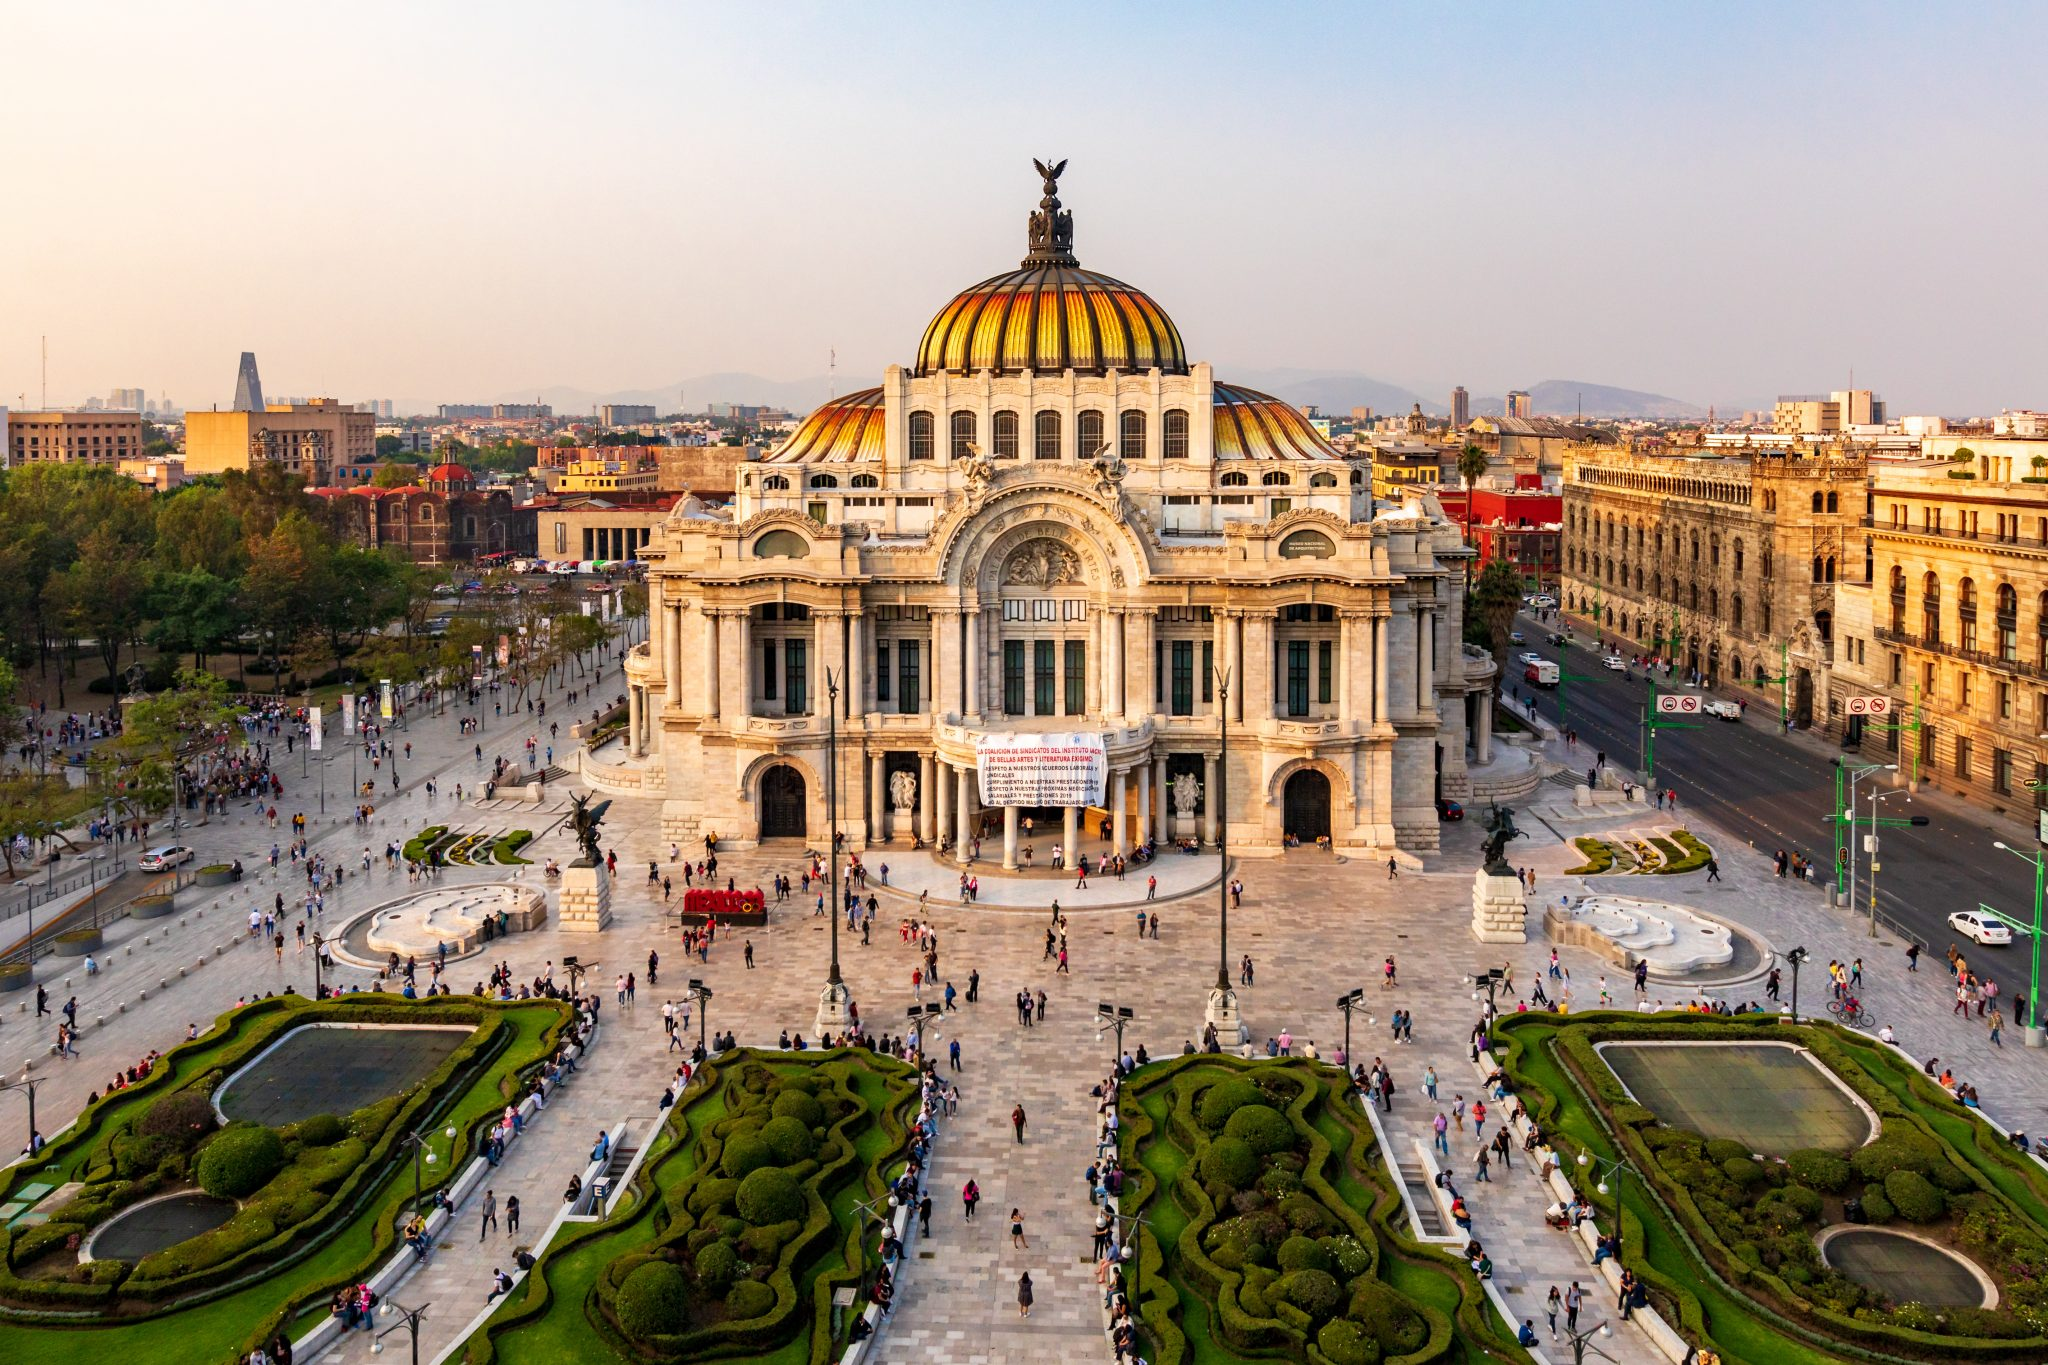 aerial view of palacio de bellas artes, one of the best places to visit during 3 days in mexico city itinerary